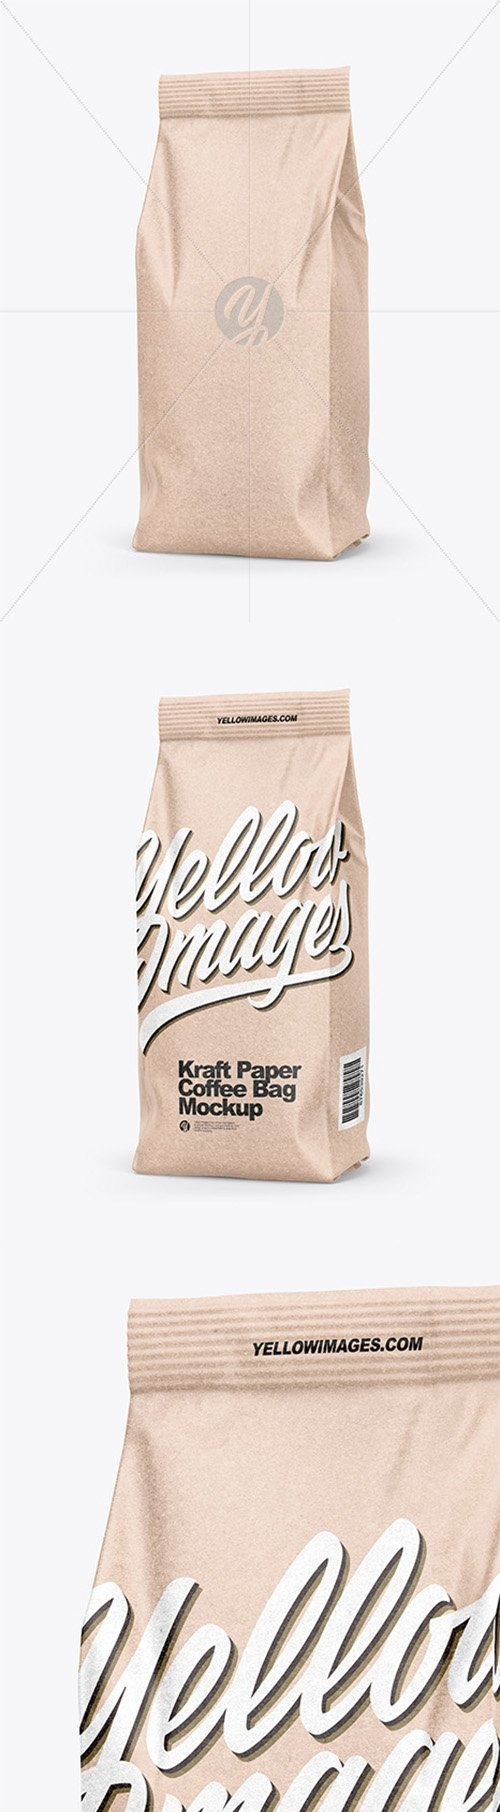 Kraft Coffee Bag Mockup - Half Side View 66451